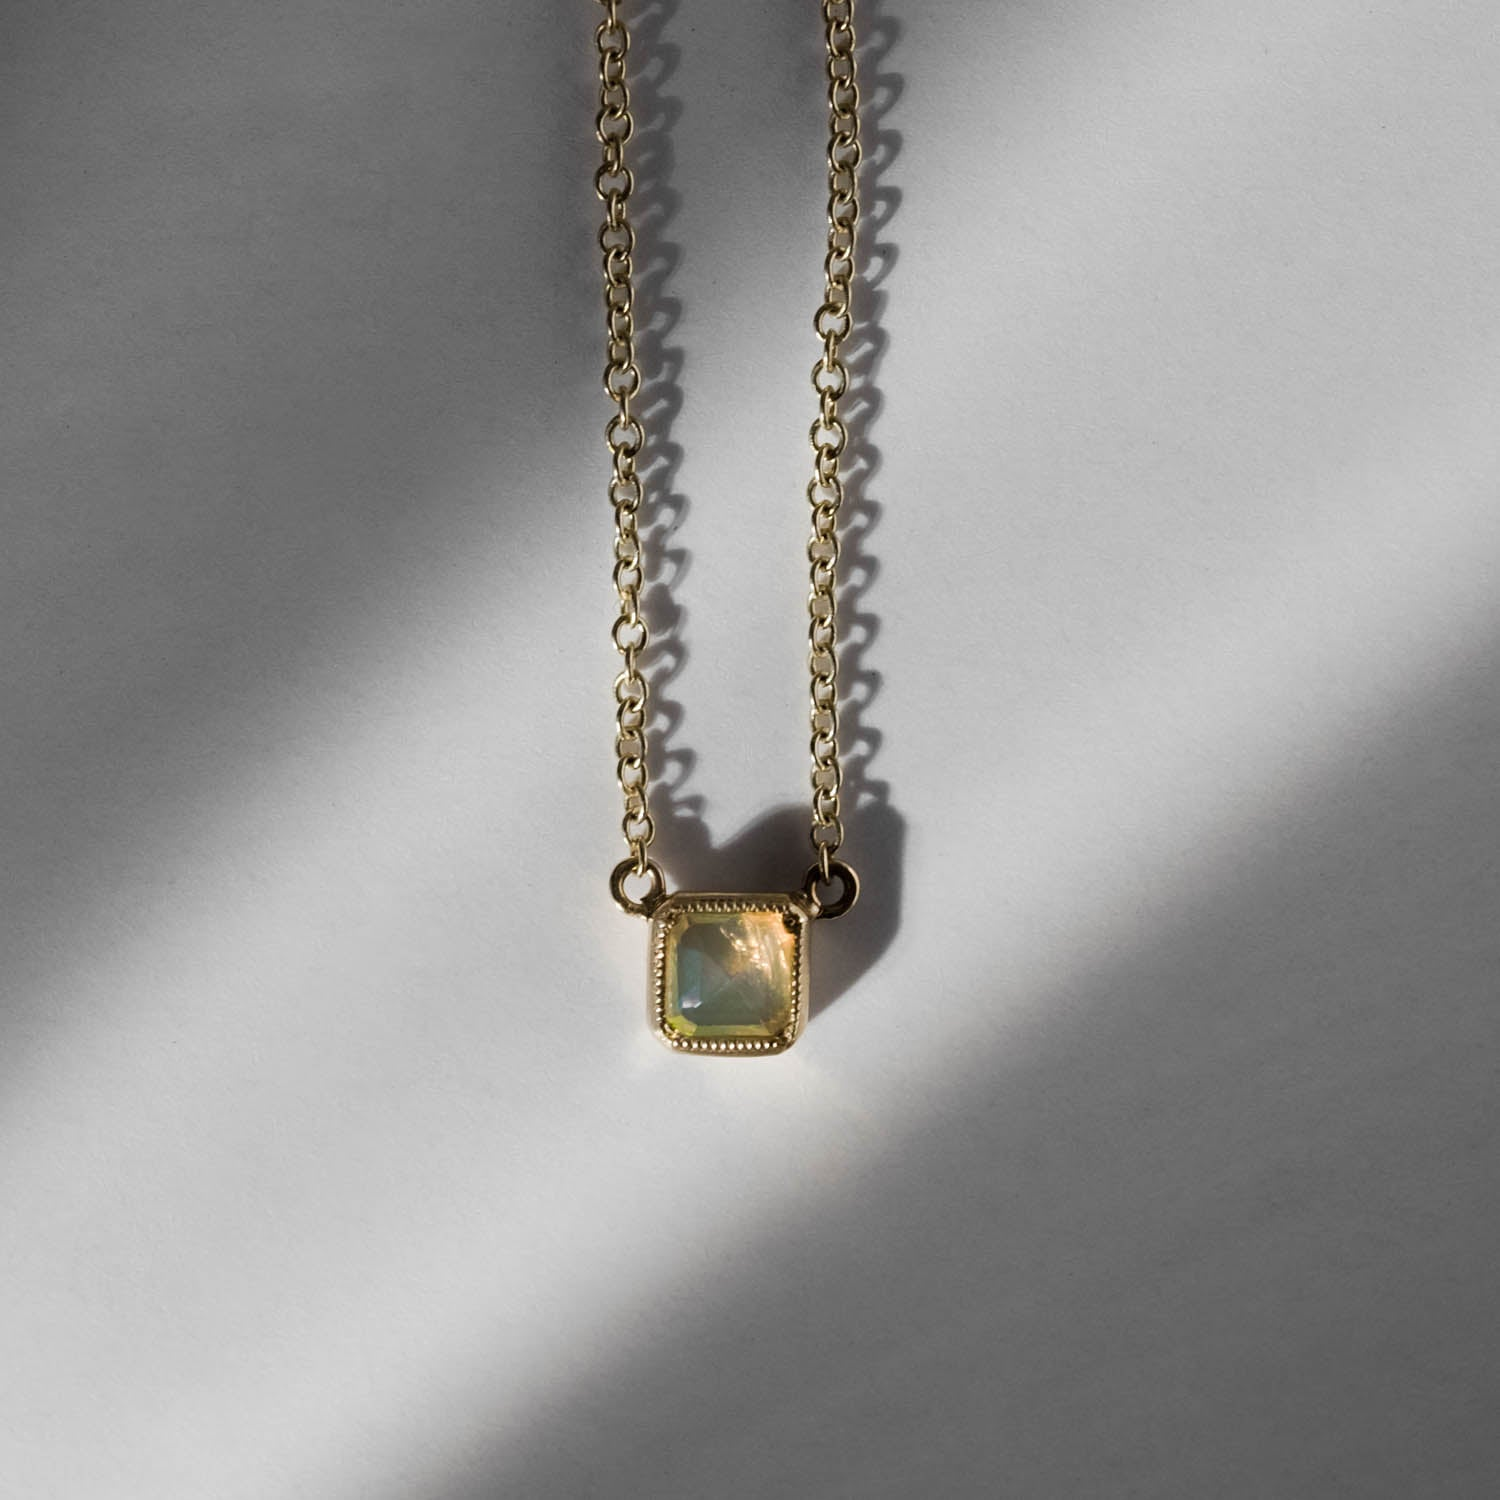 Maman Square Bezel Opal Necklace